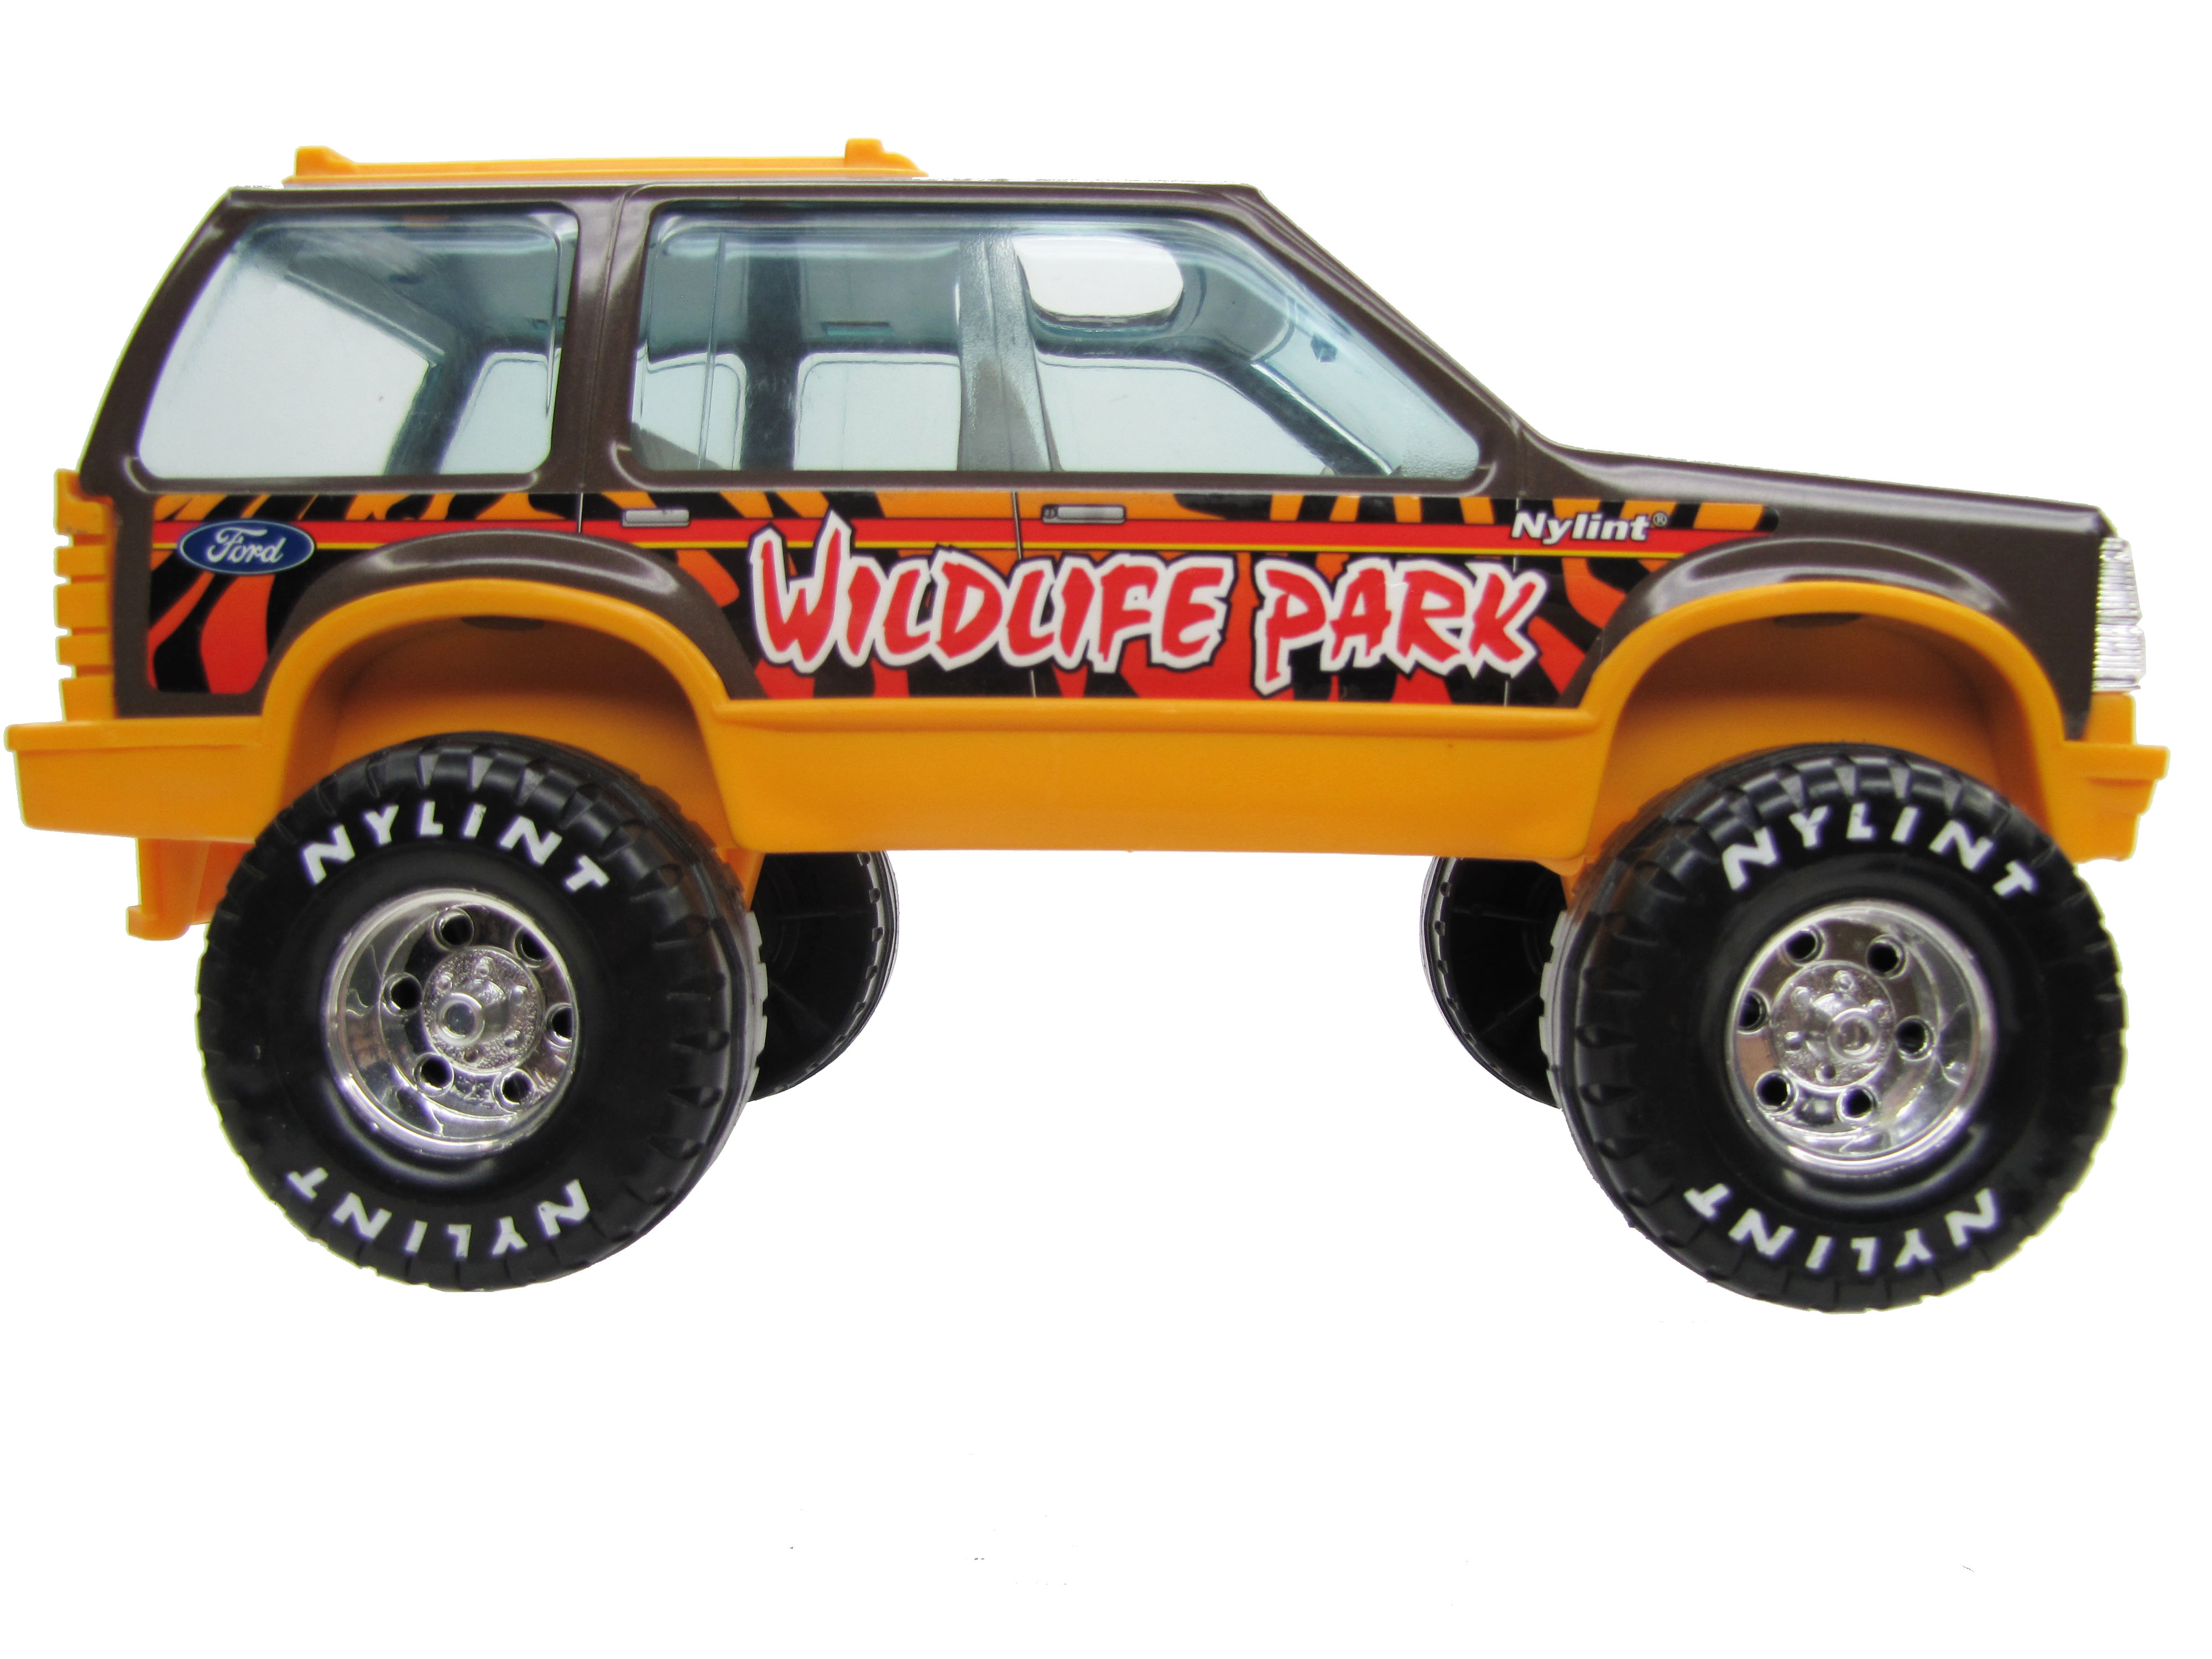 1980's Vintage Nylint Ford Bronco Wildlife Park Complete Mint